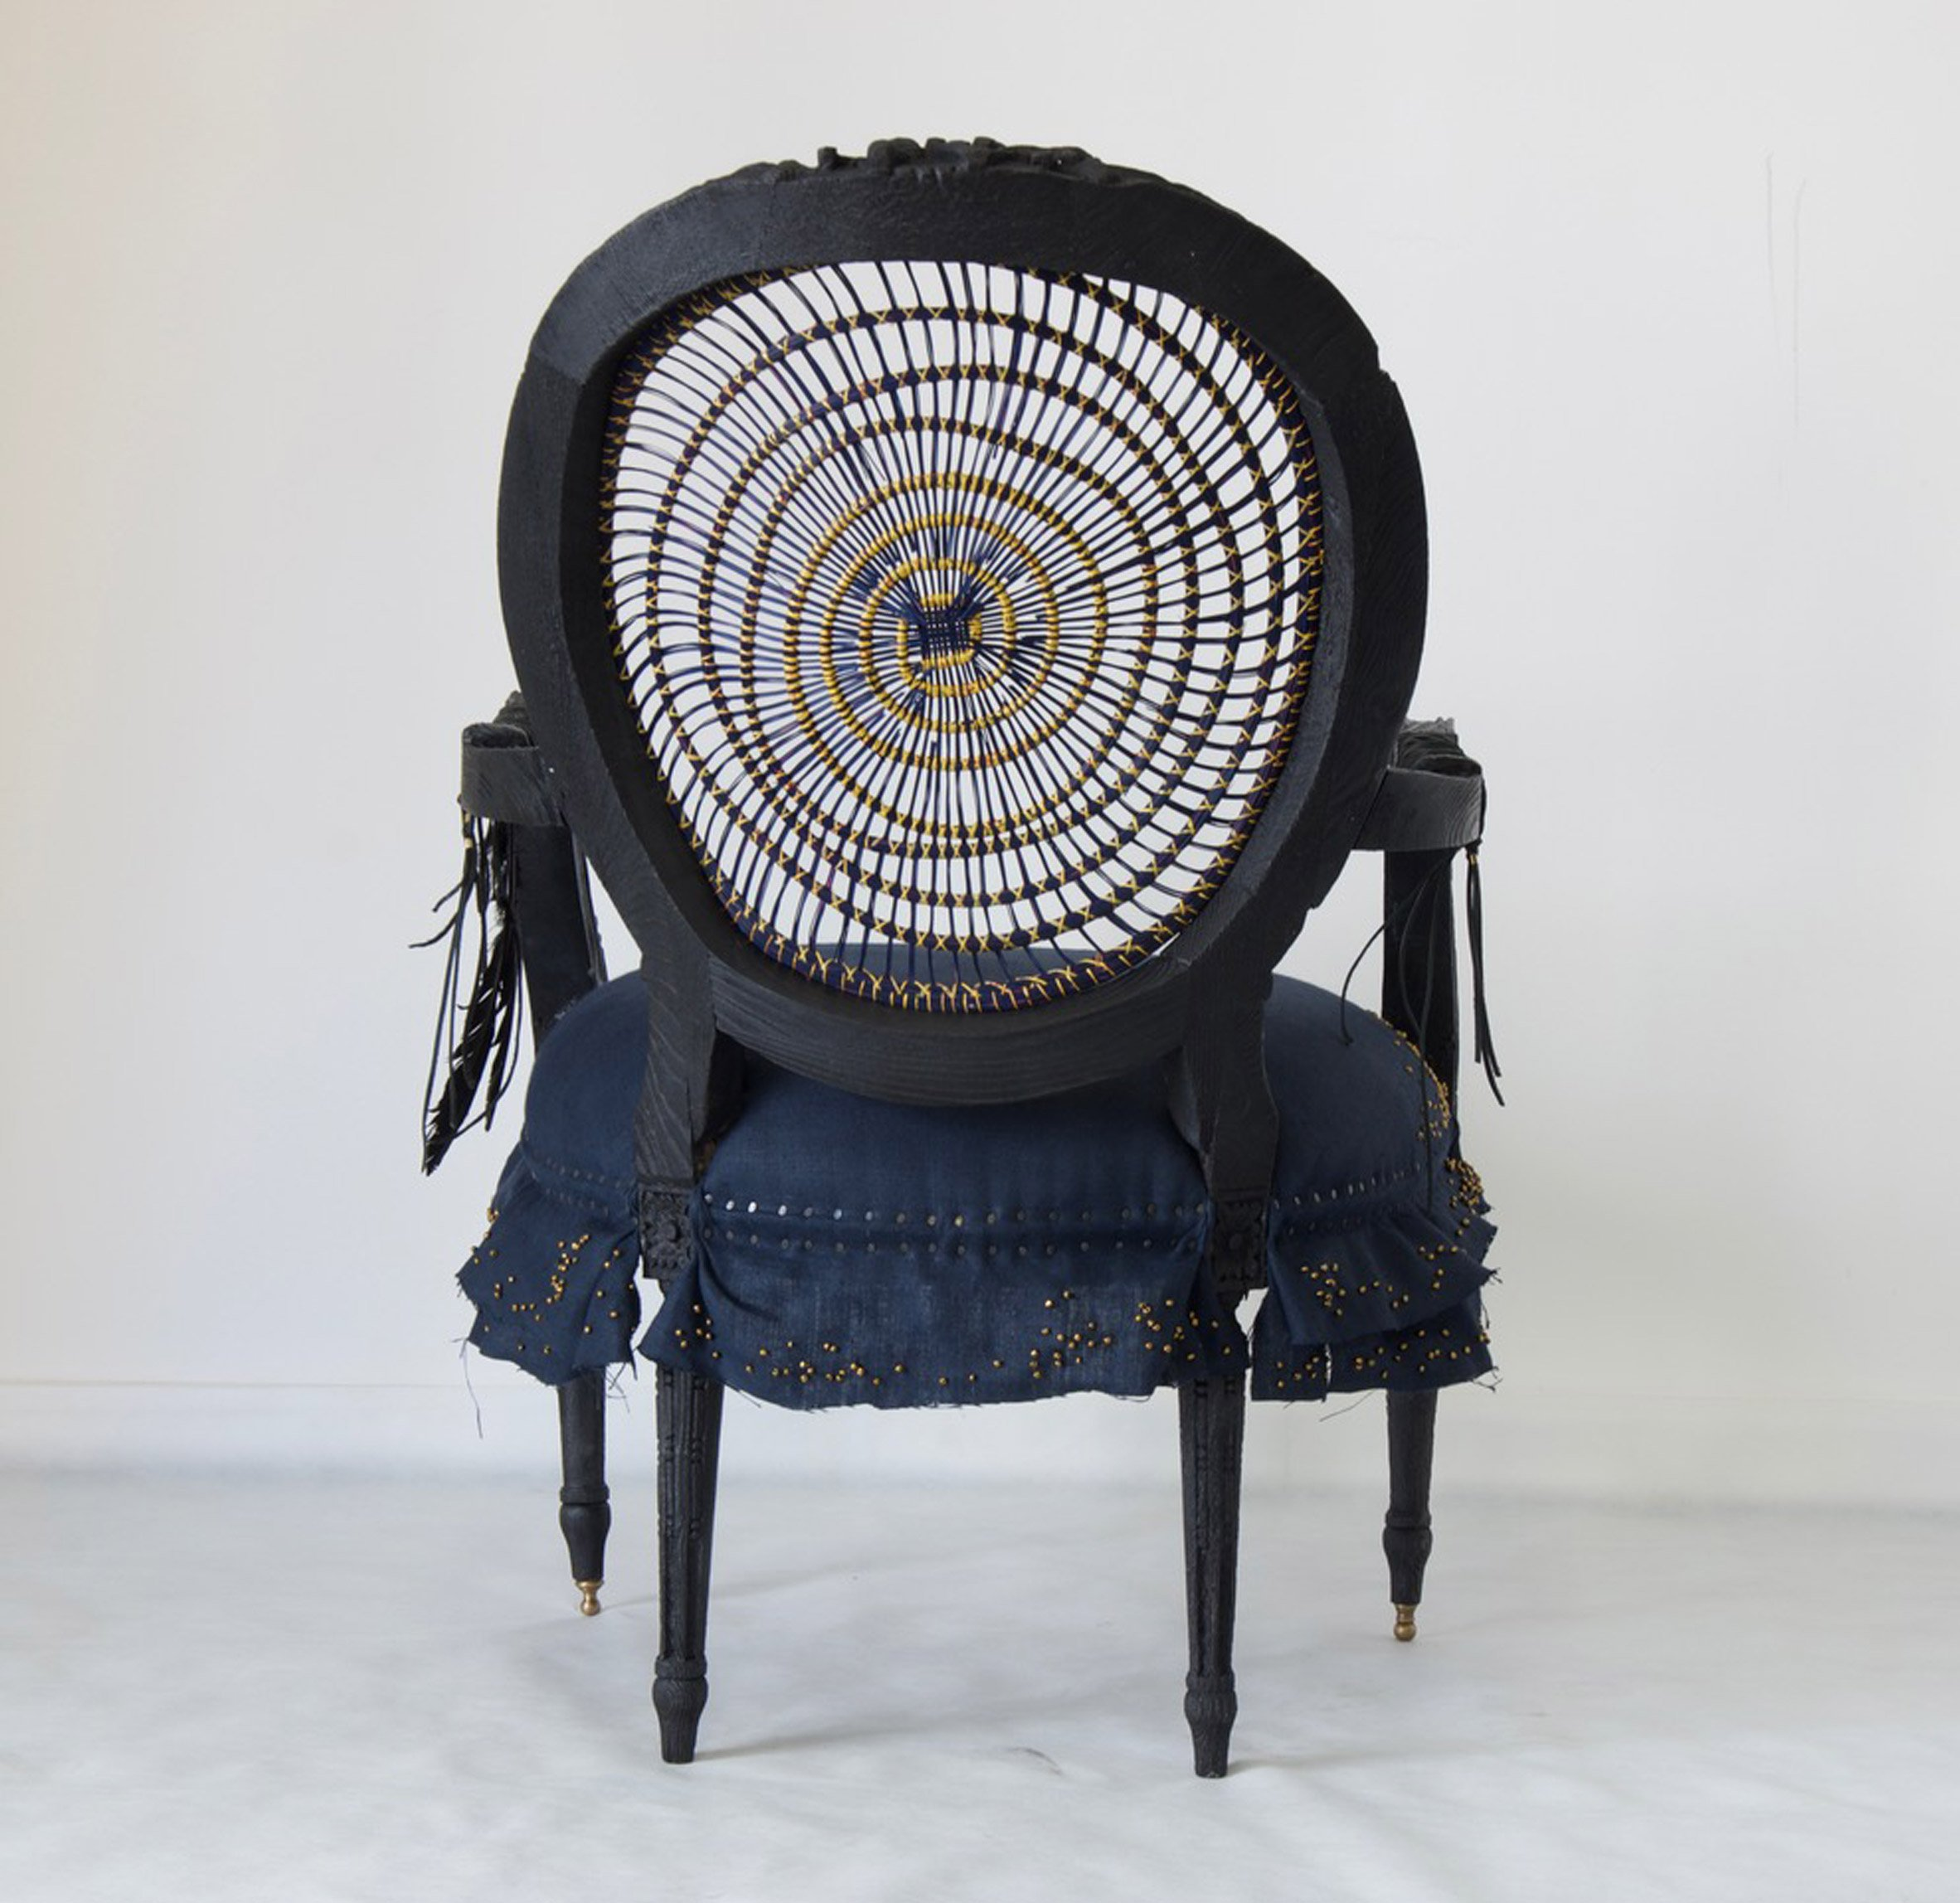 Atang Tshikare and Eve Collett's Leifo chair combines scorched timber and woven grass